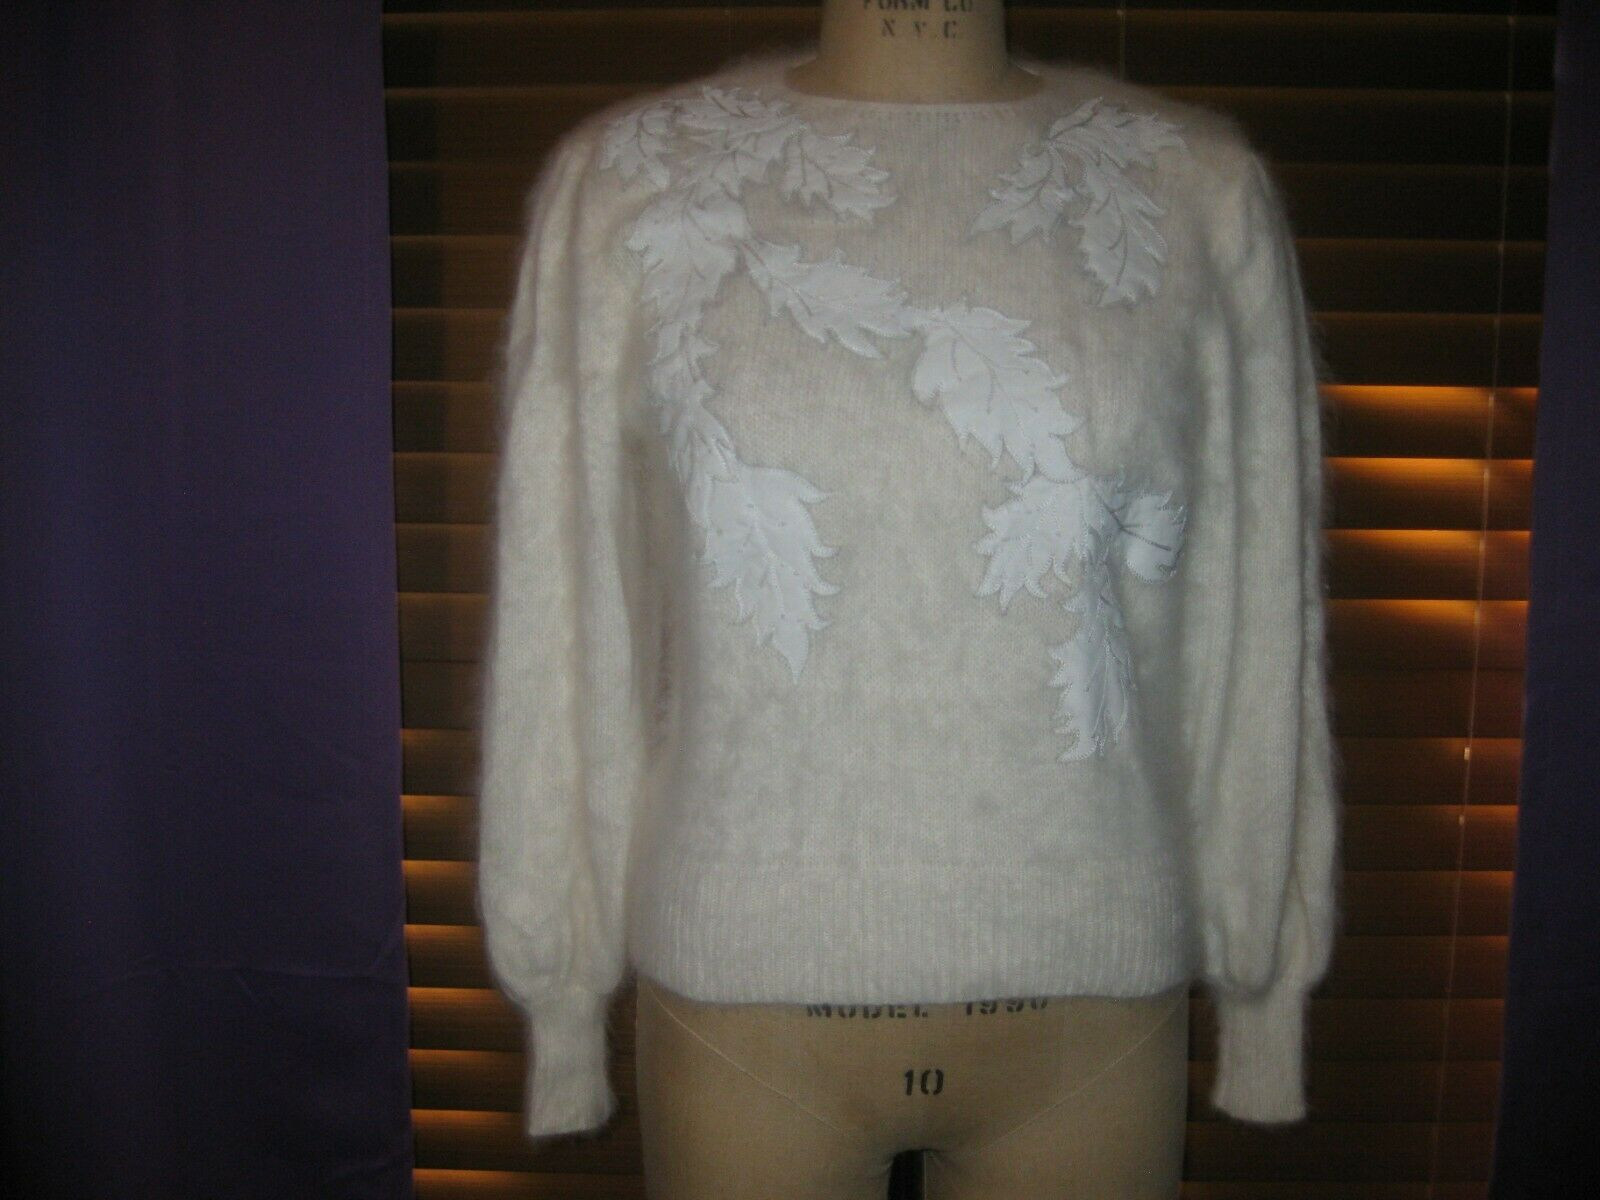 LUXURIOUS HAND KNIT ANGORA SWEATER WITH GENUINE LEATHER LEAF APPLIQUES SZ M NWOT